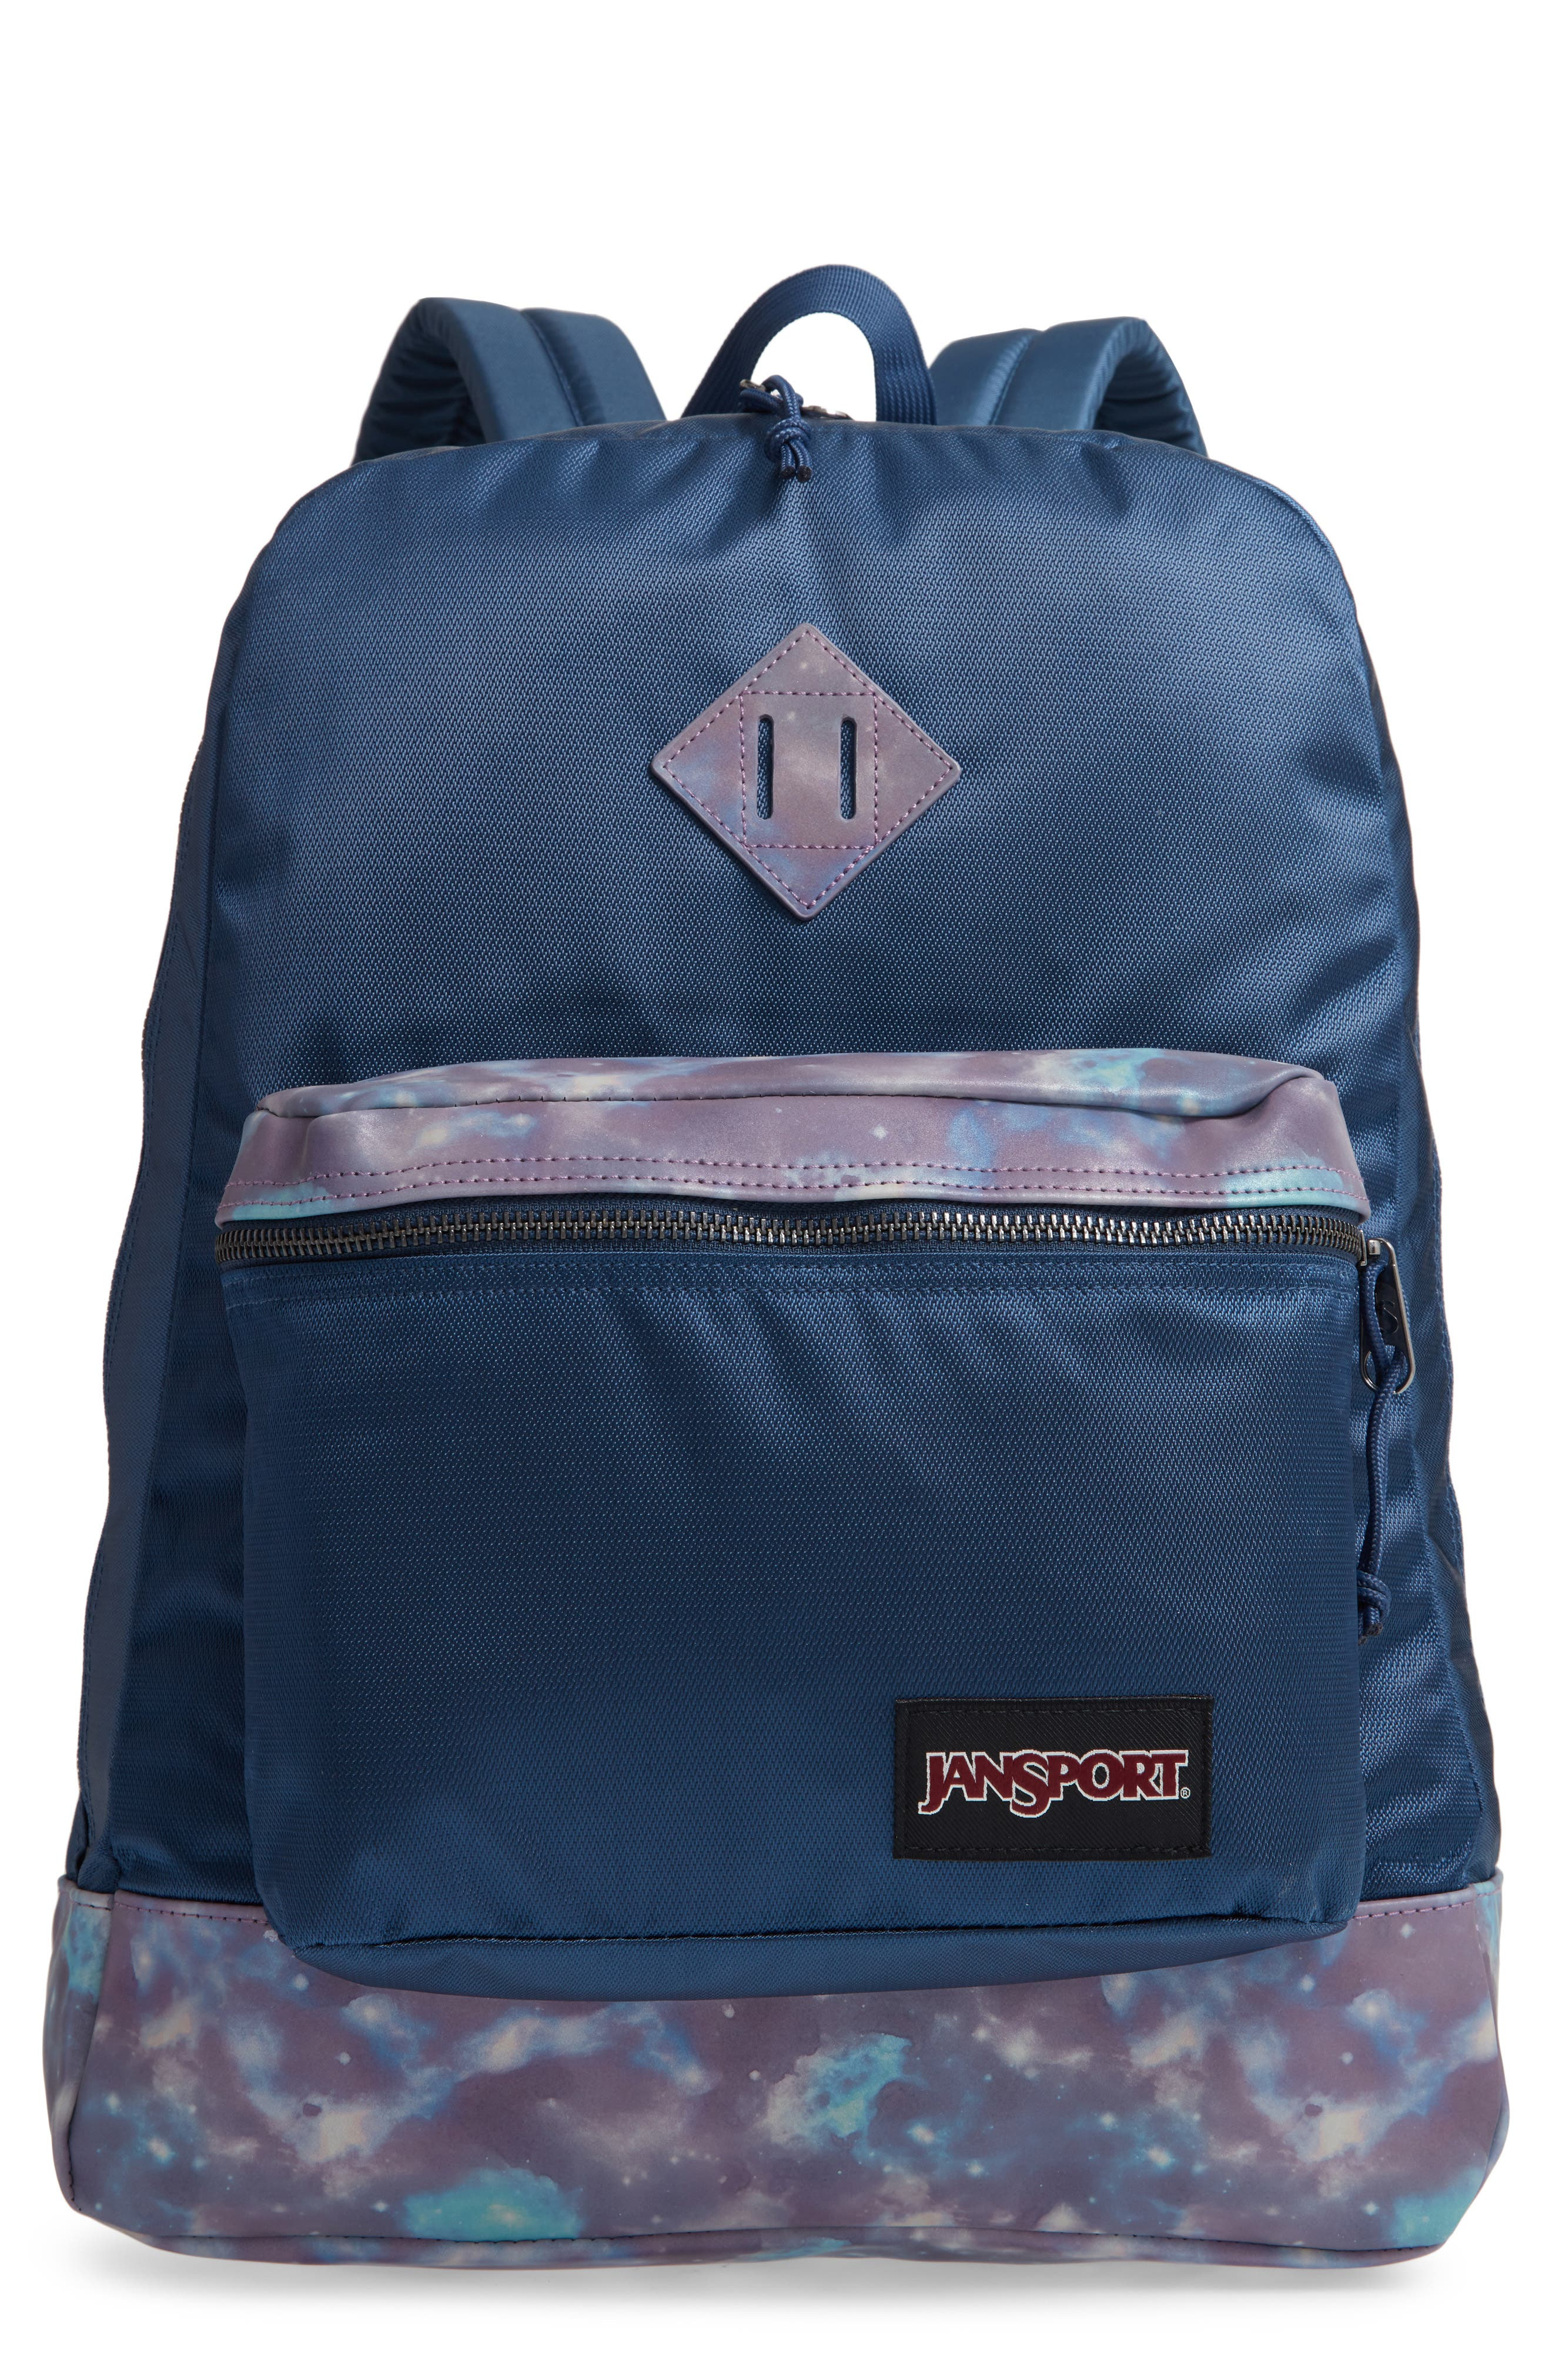 Super FX Backpack, Main, color, NAVY SPACE